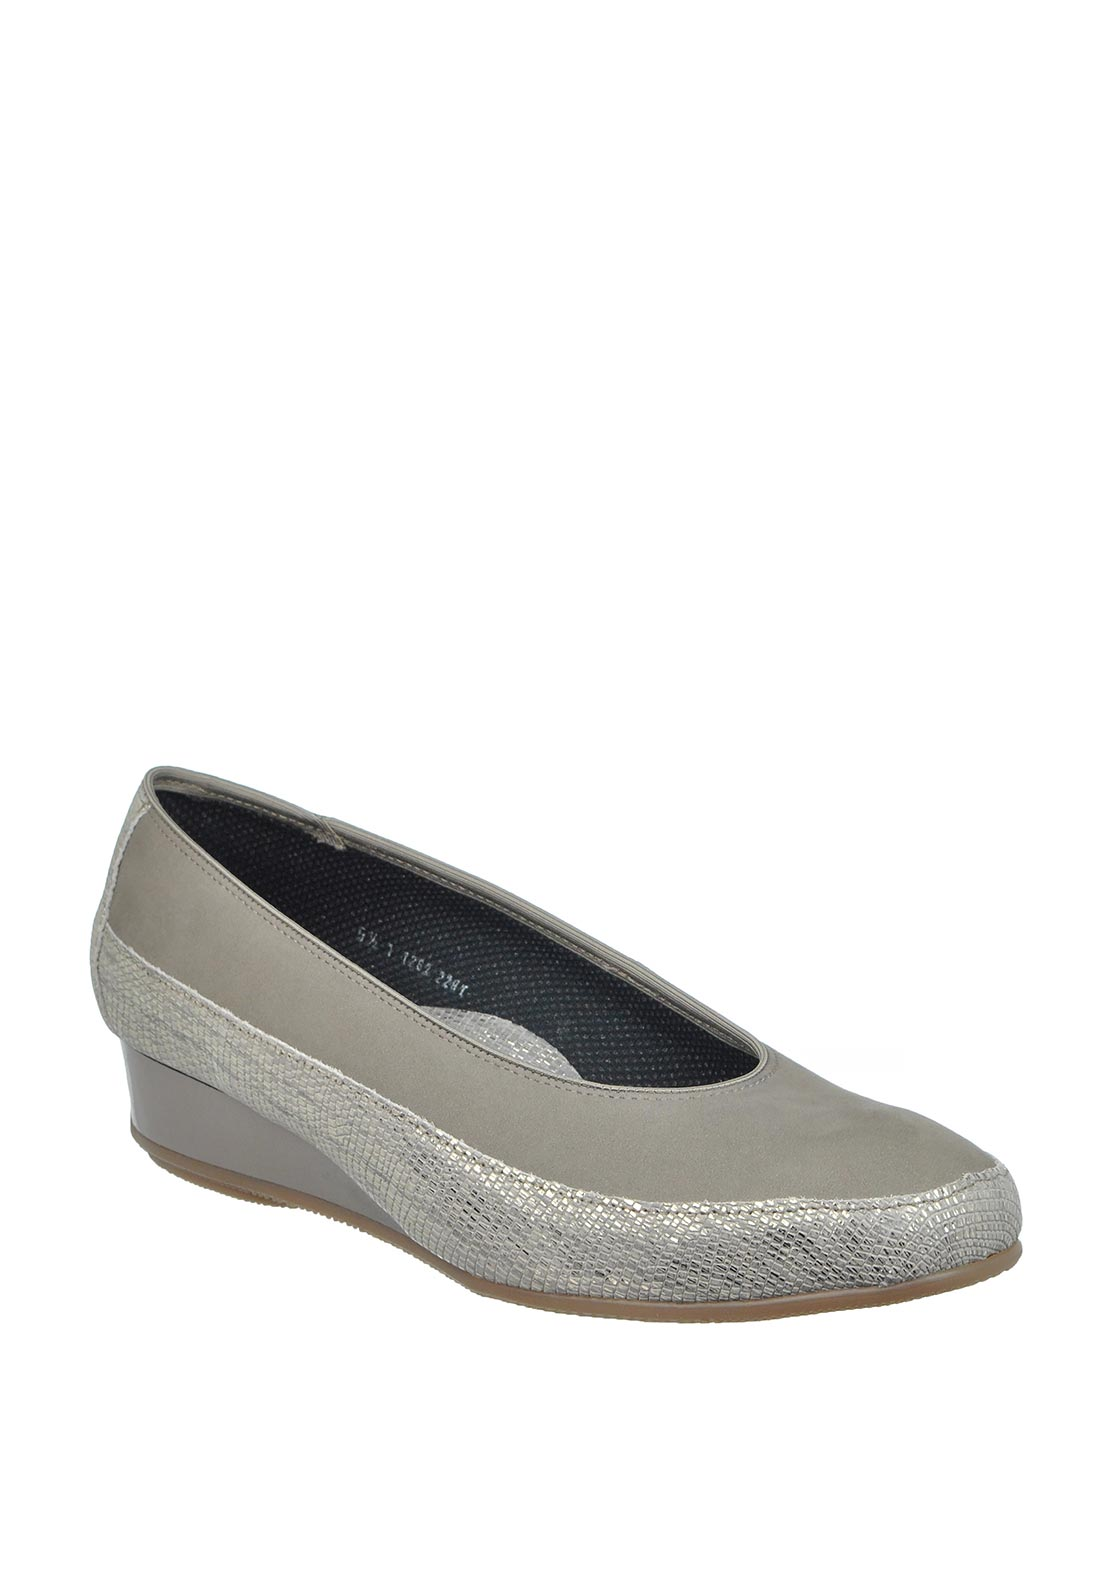 Ara Reptile Print Slip on Wedged Leather Shoes, Grey